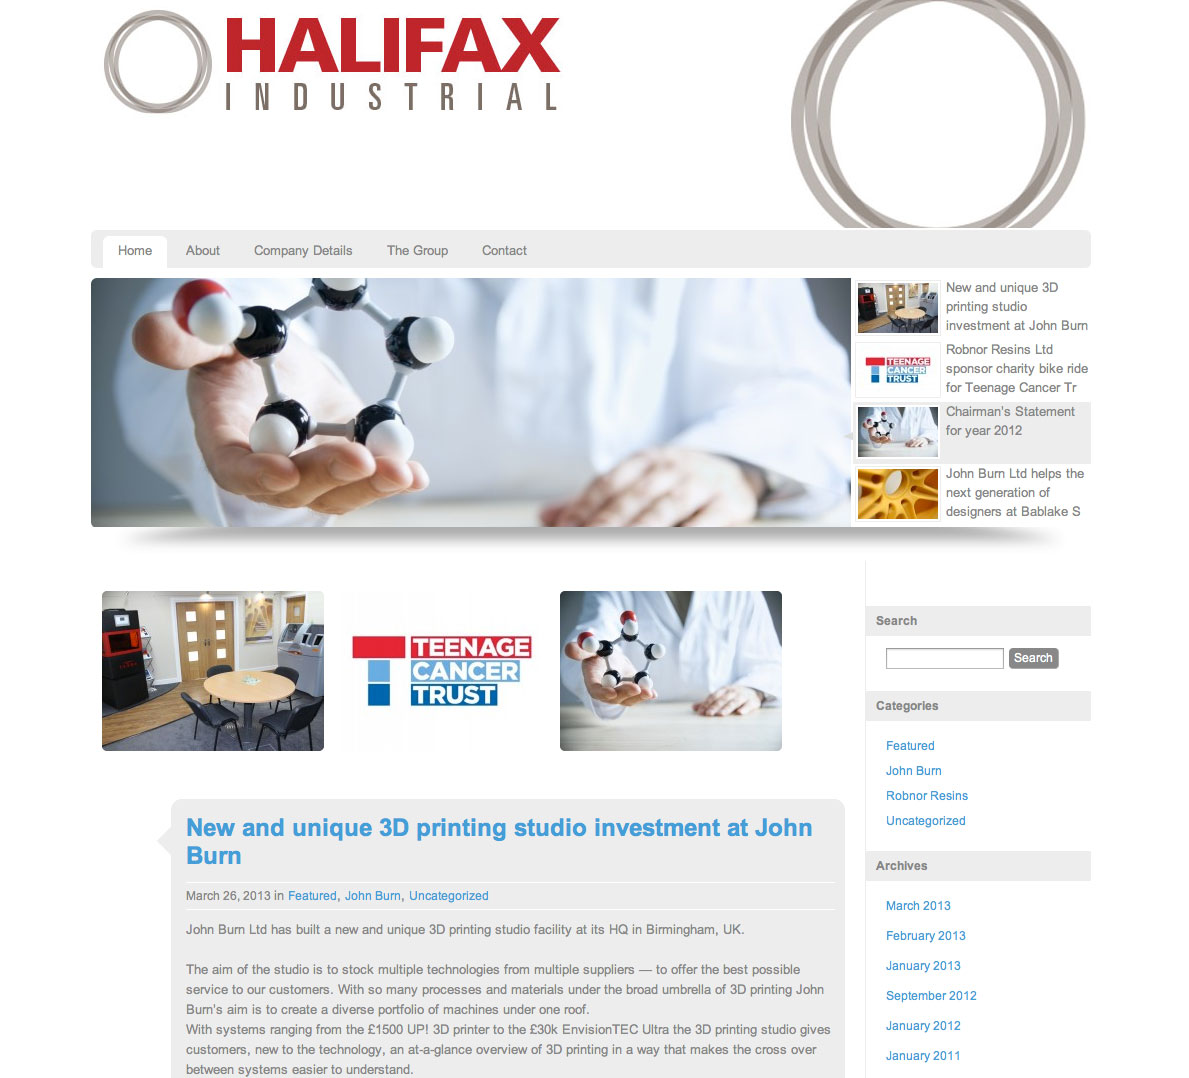 halifax_industrial_website